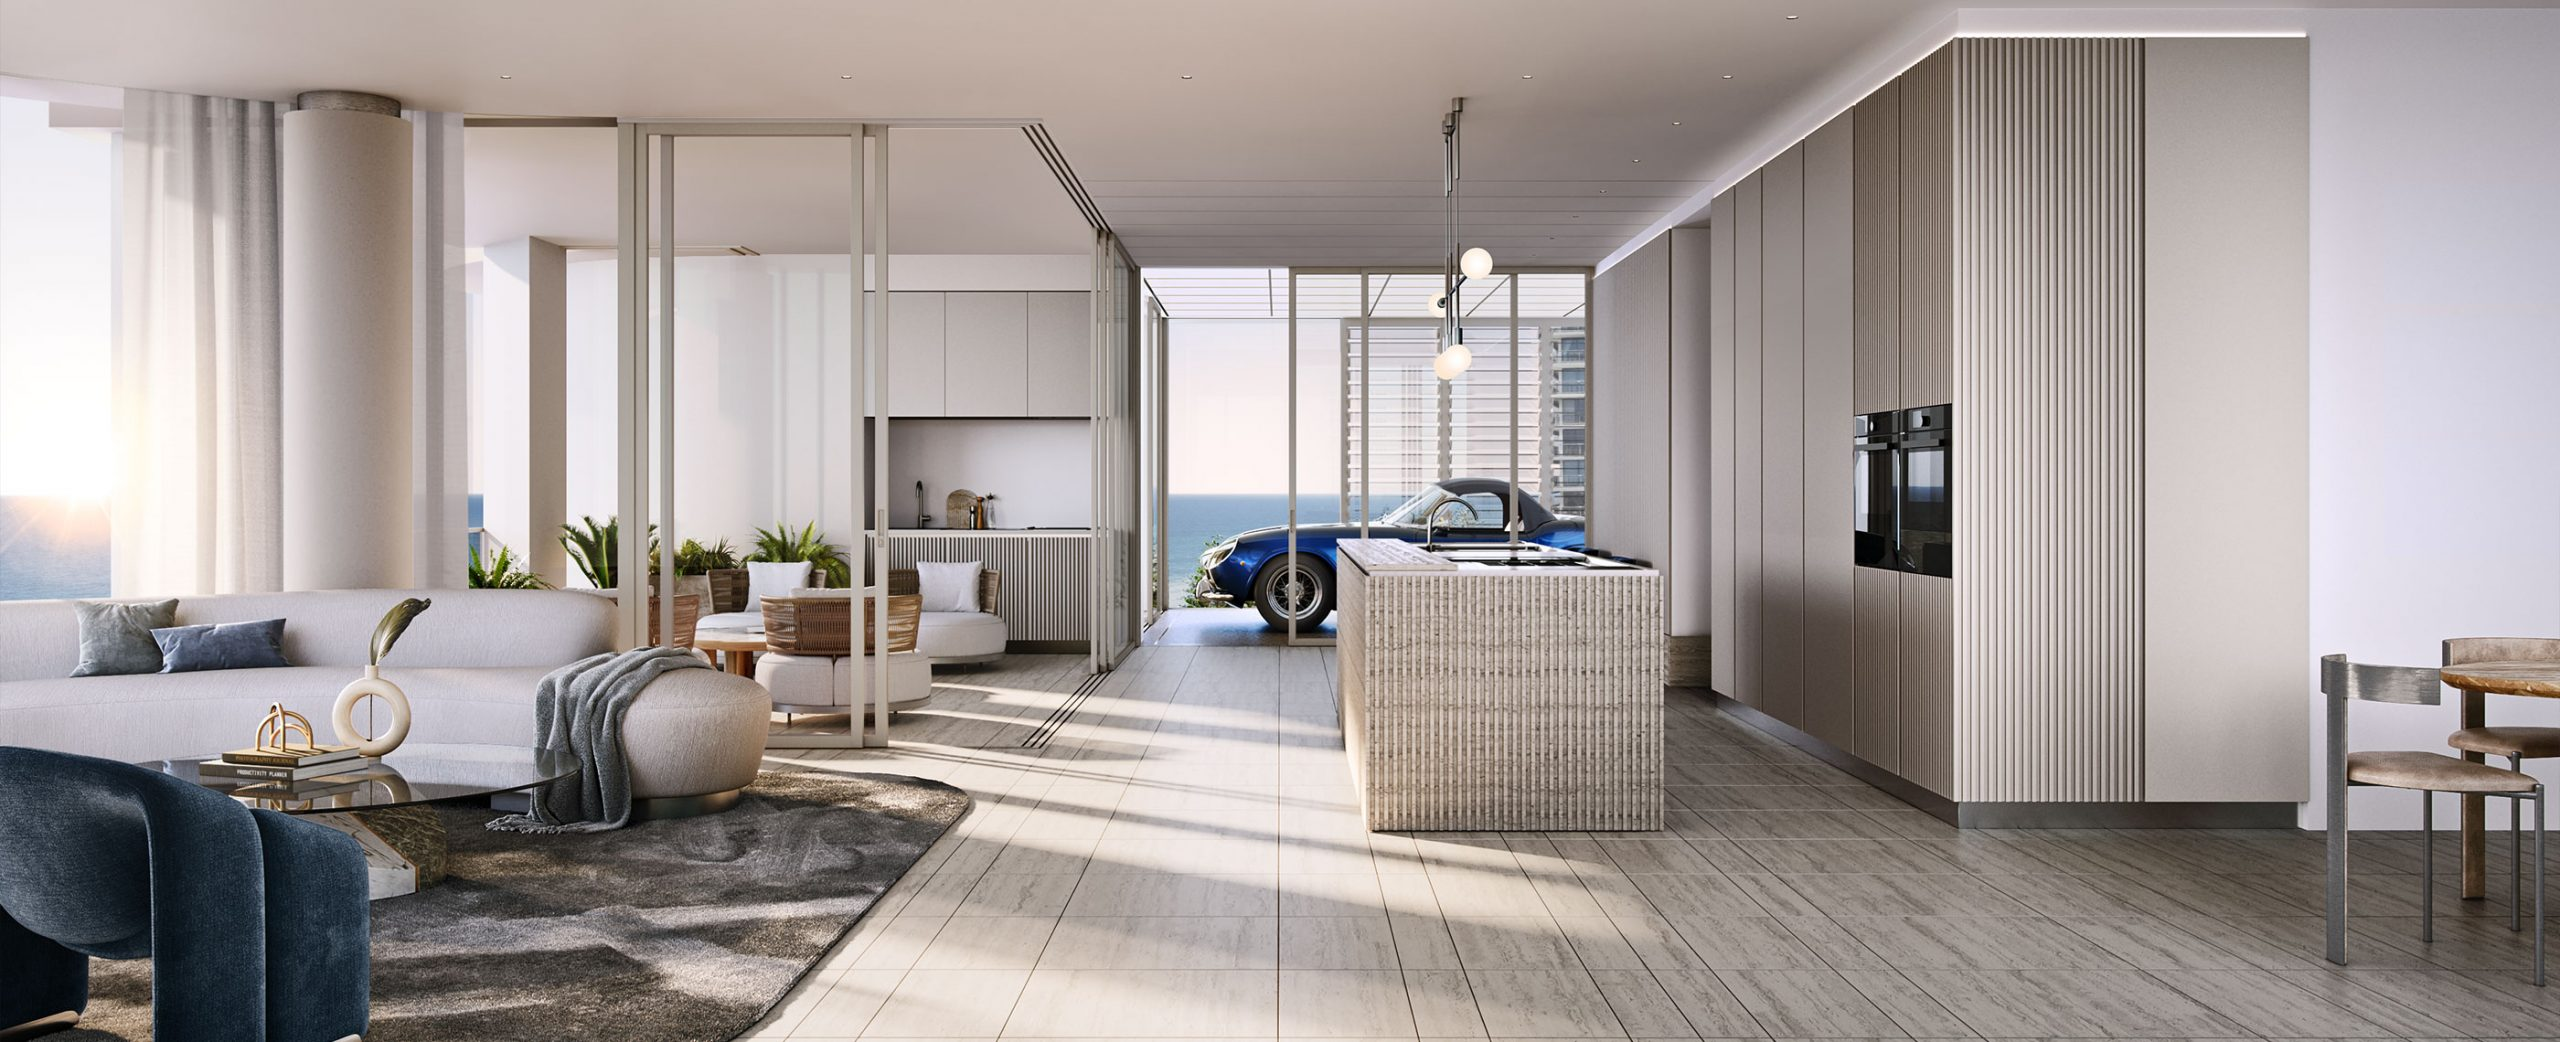 The Monaco Rothelowman Architecture project